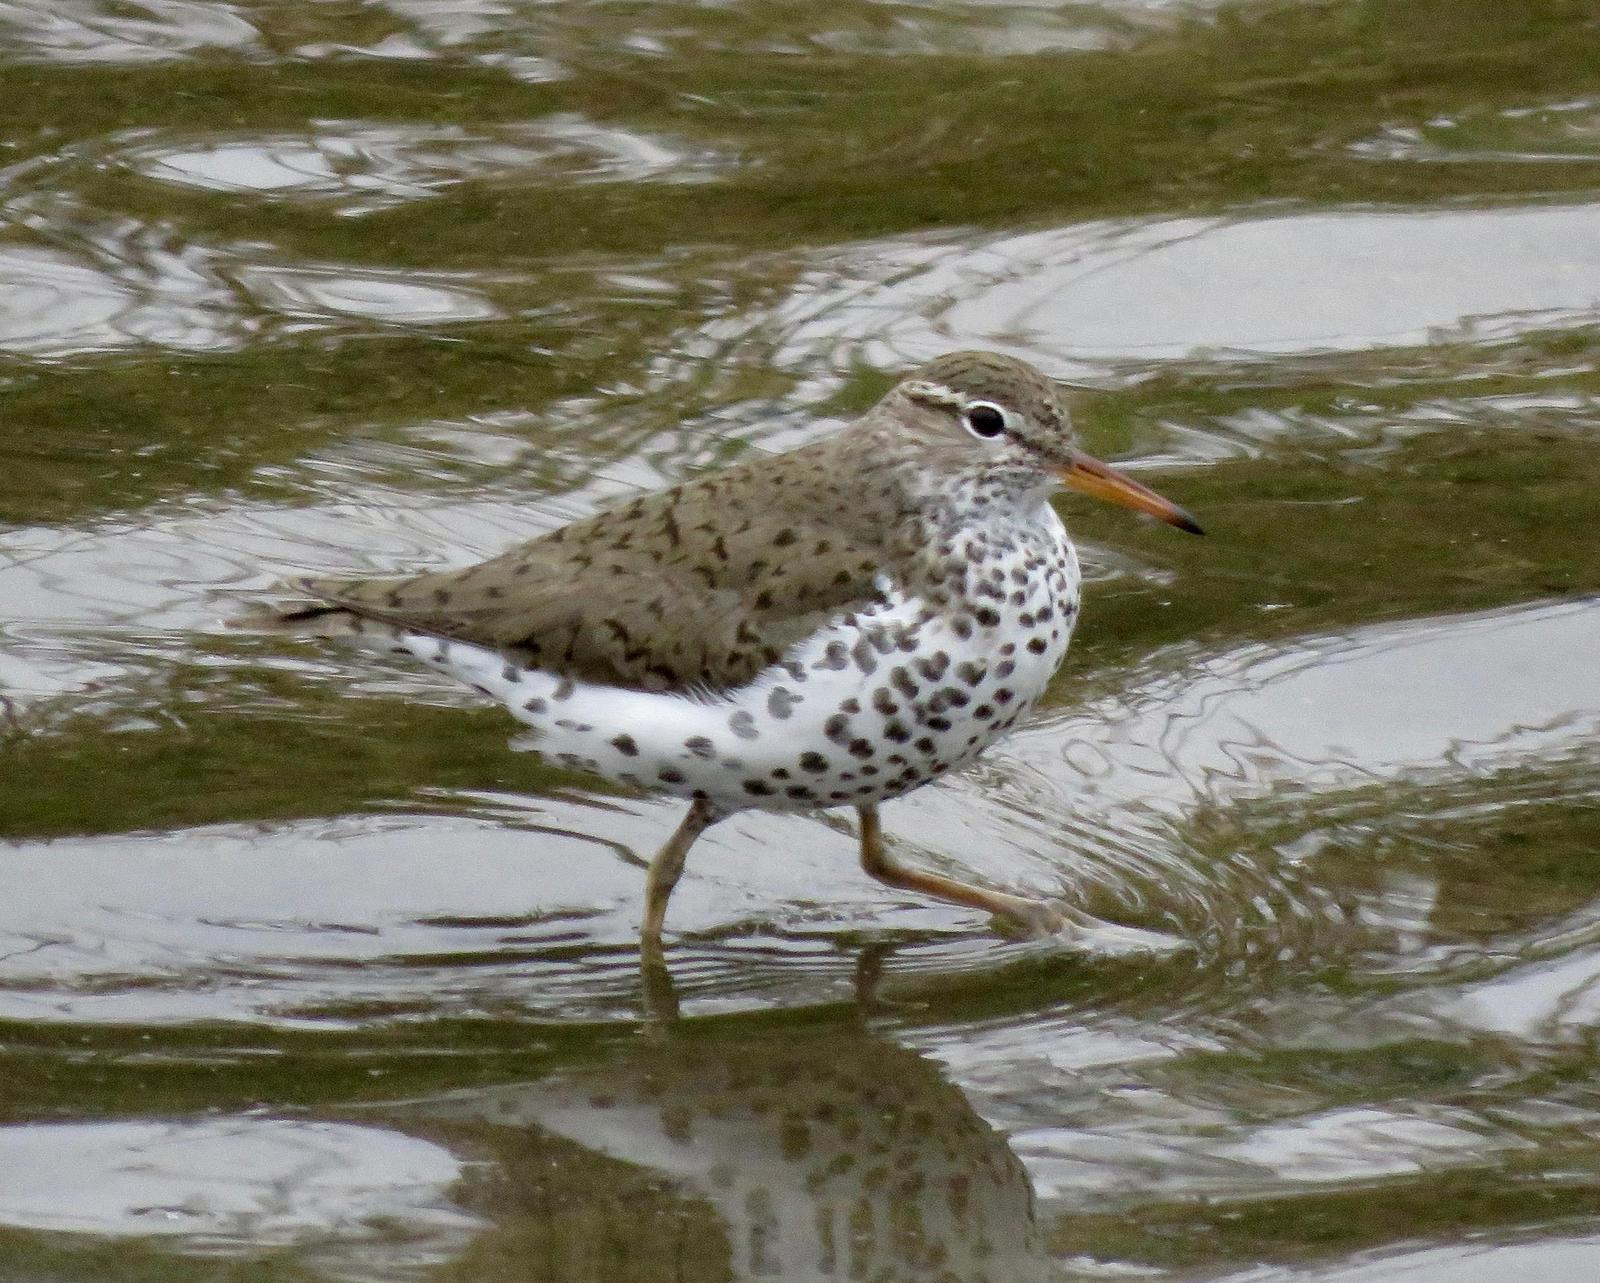 Spotted Sandpiper Photo by Don Glasco